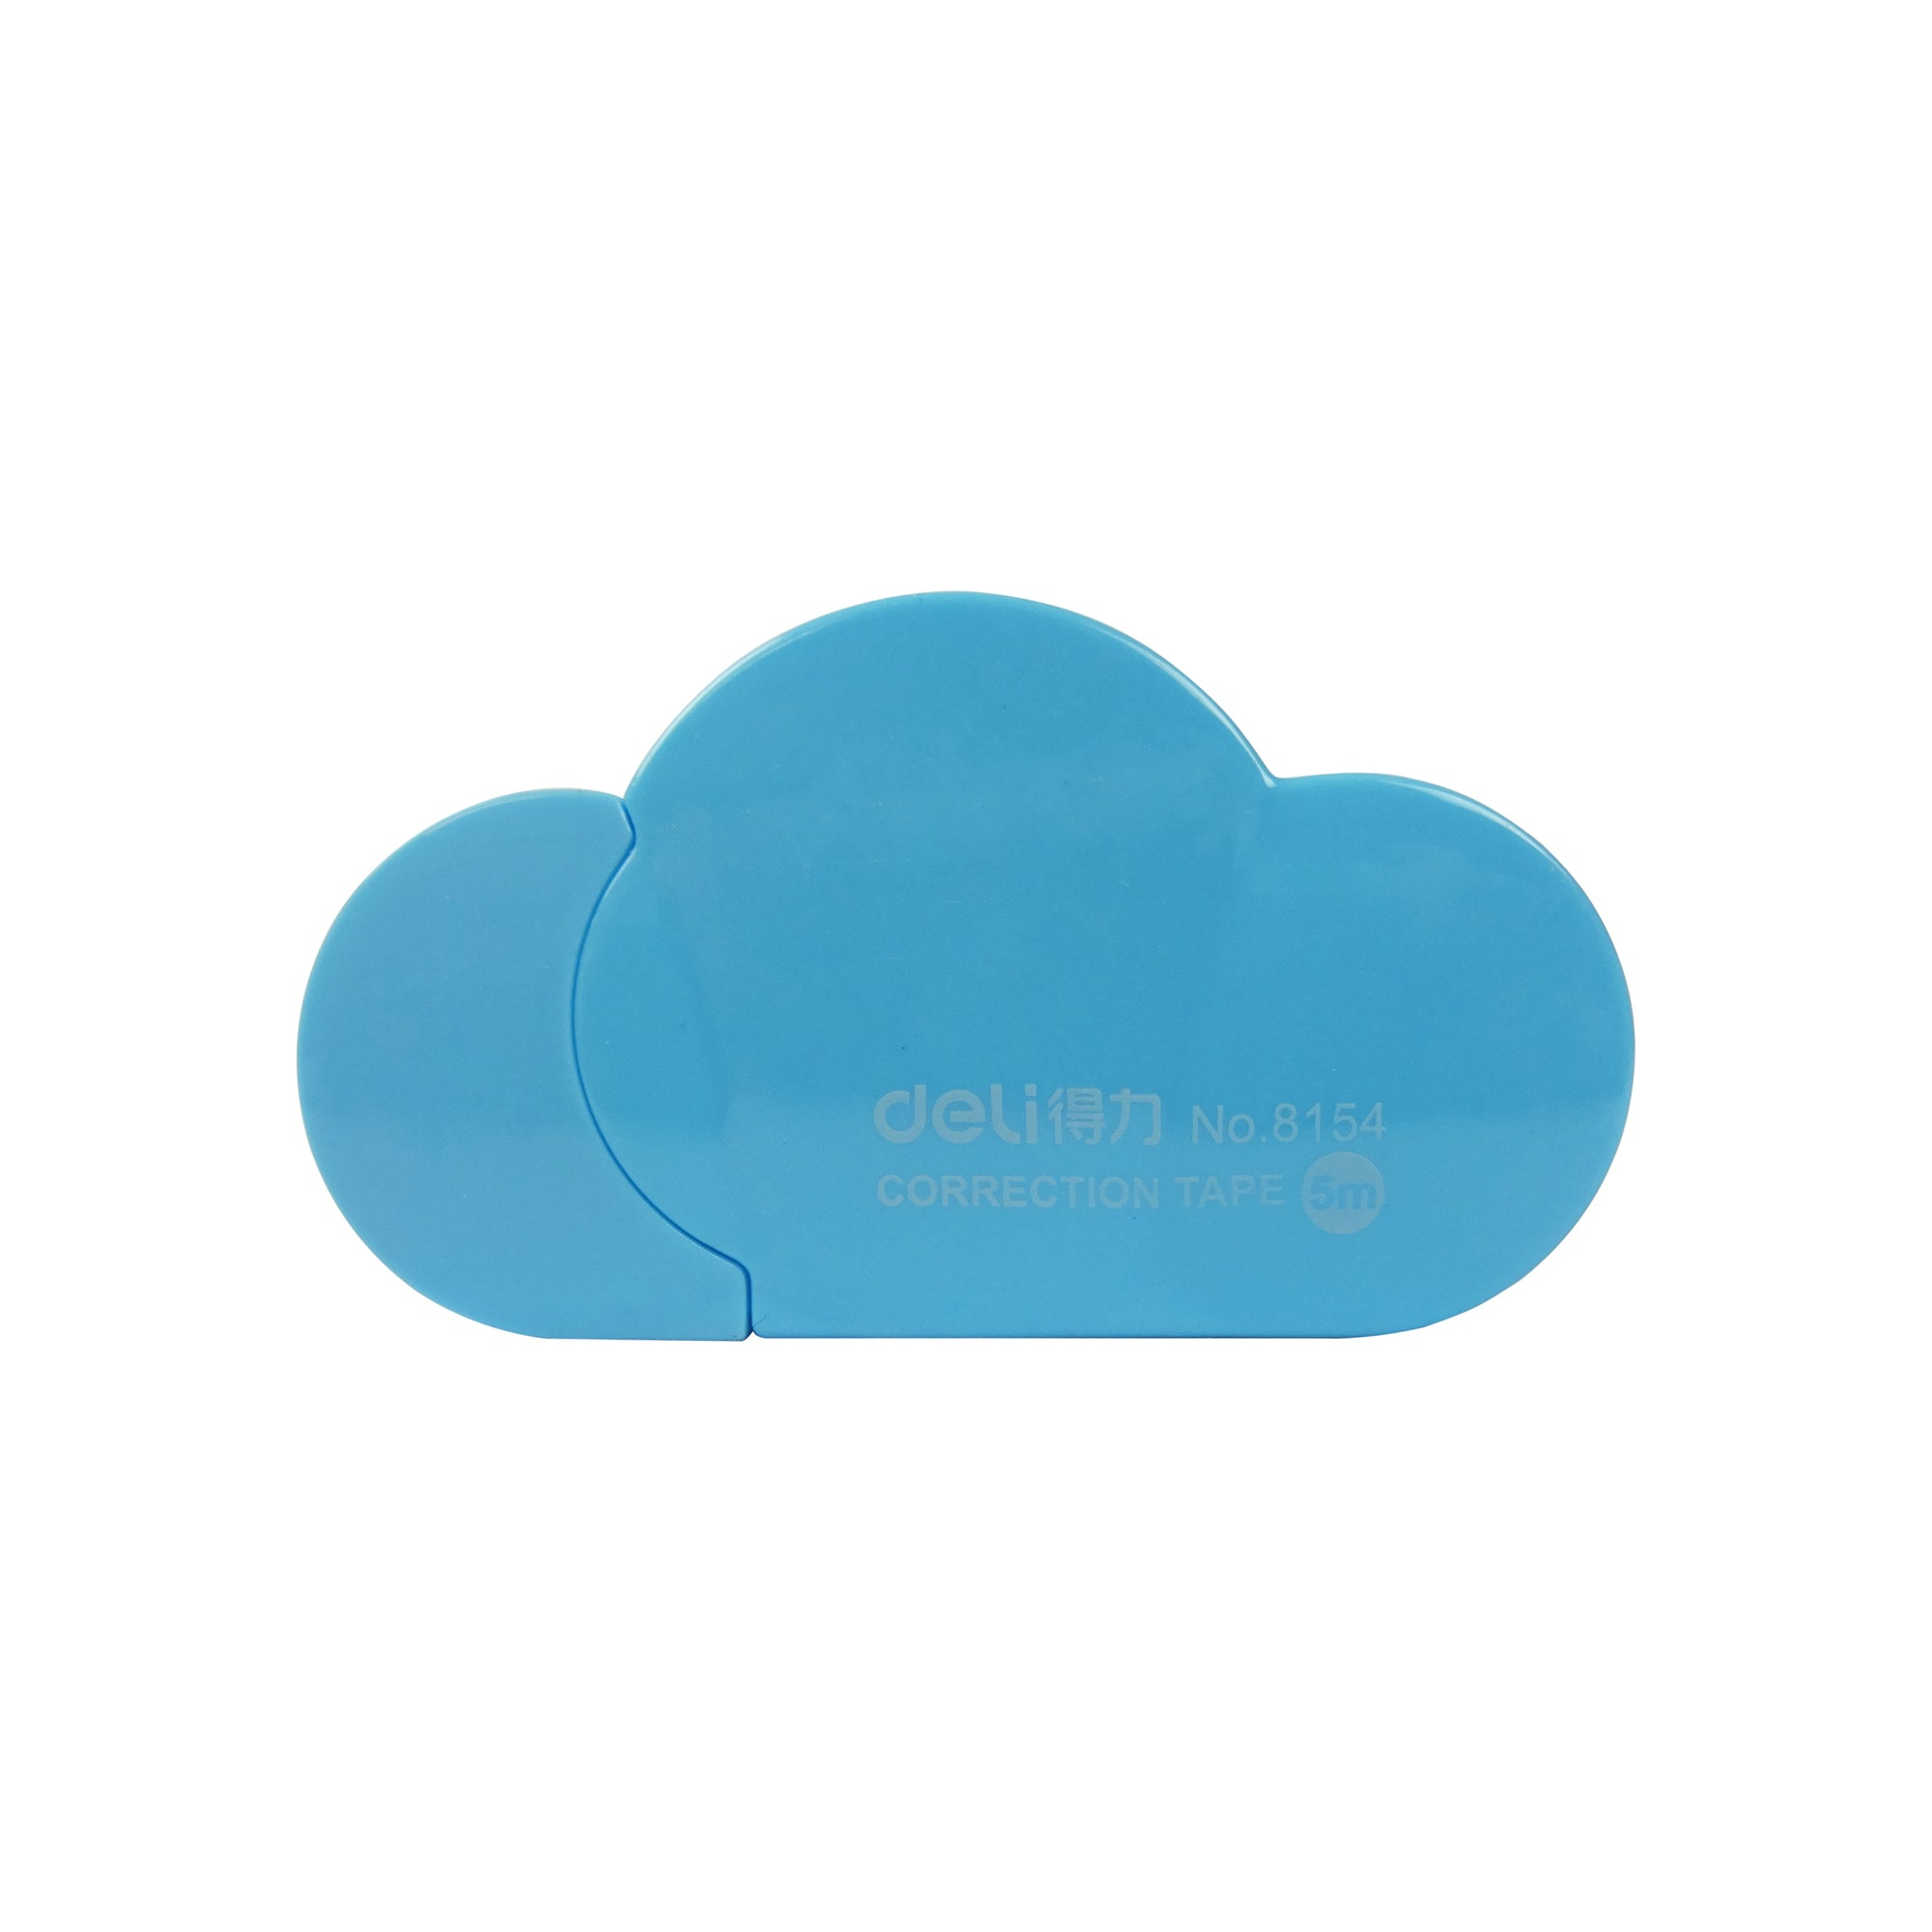 Cloud Pen Corrector - Blue